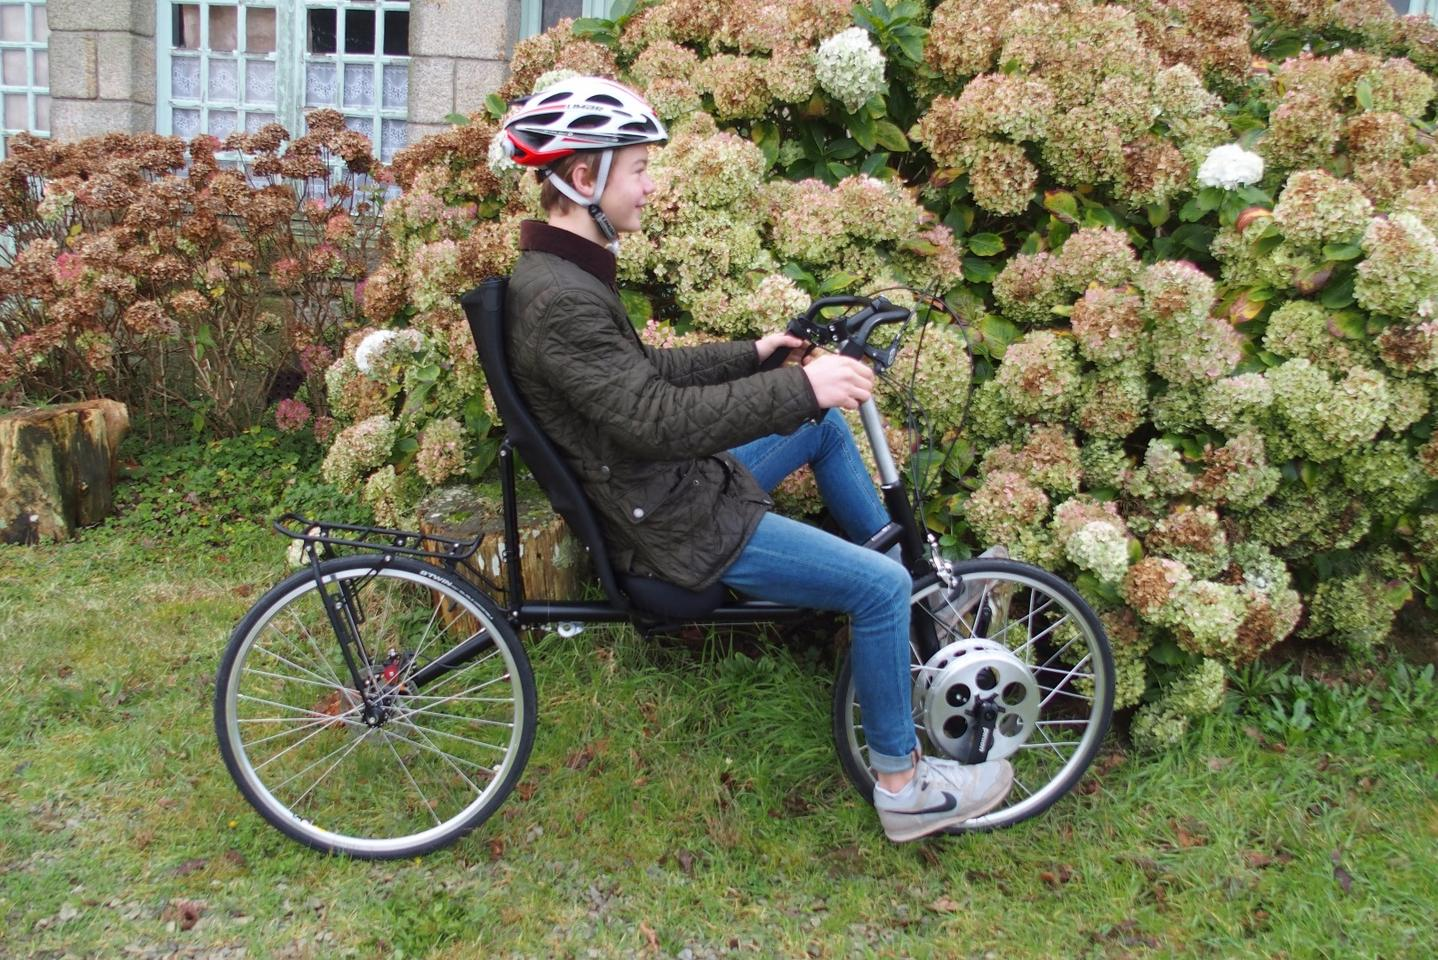 The KerVelo's pedals – and its 18-speed transmission – are in its front wheel